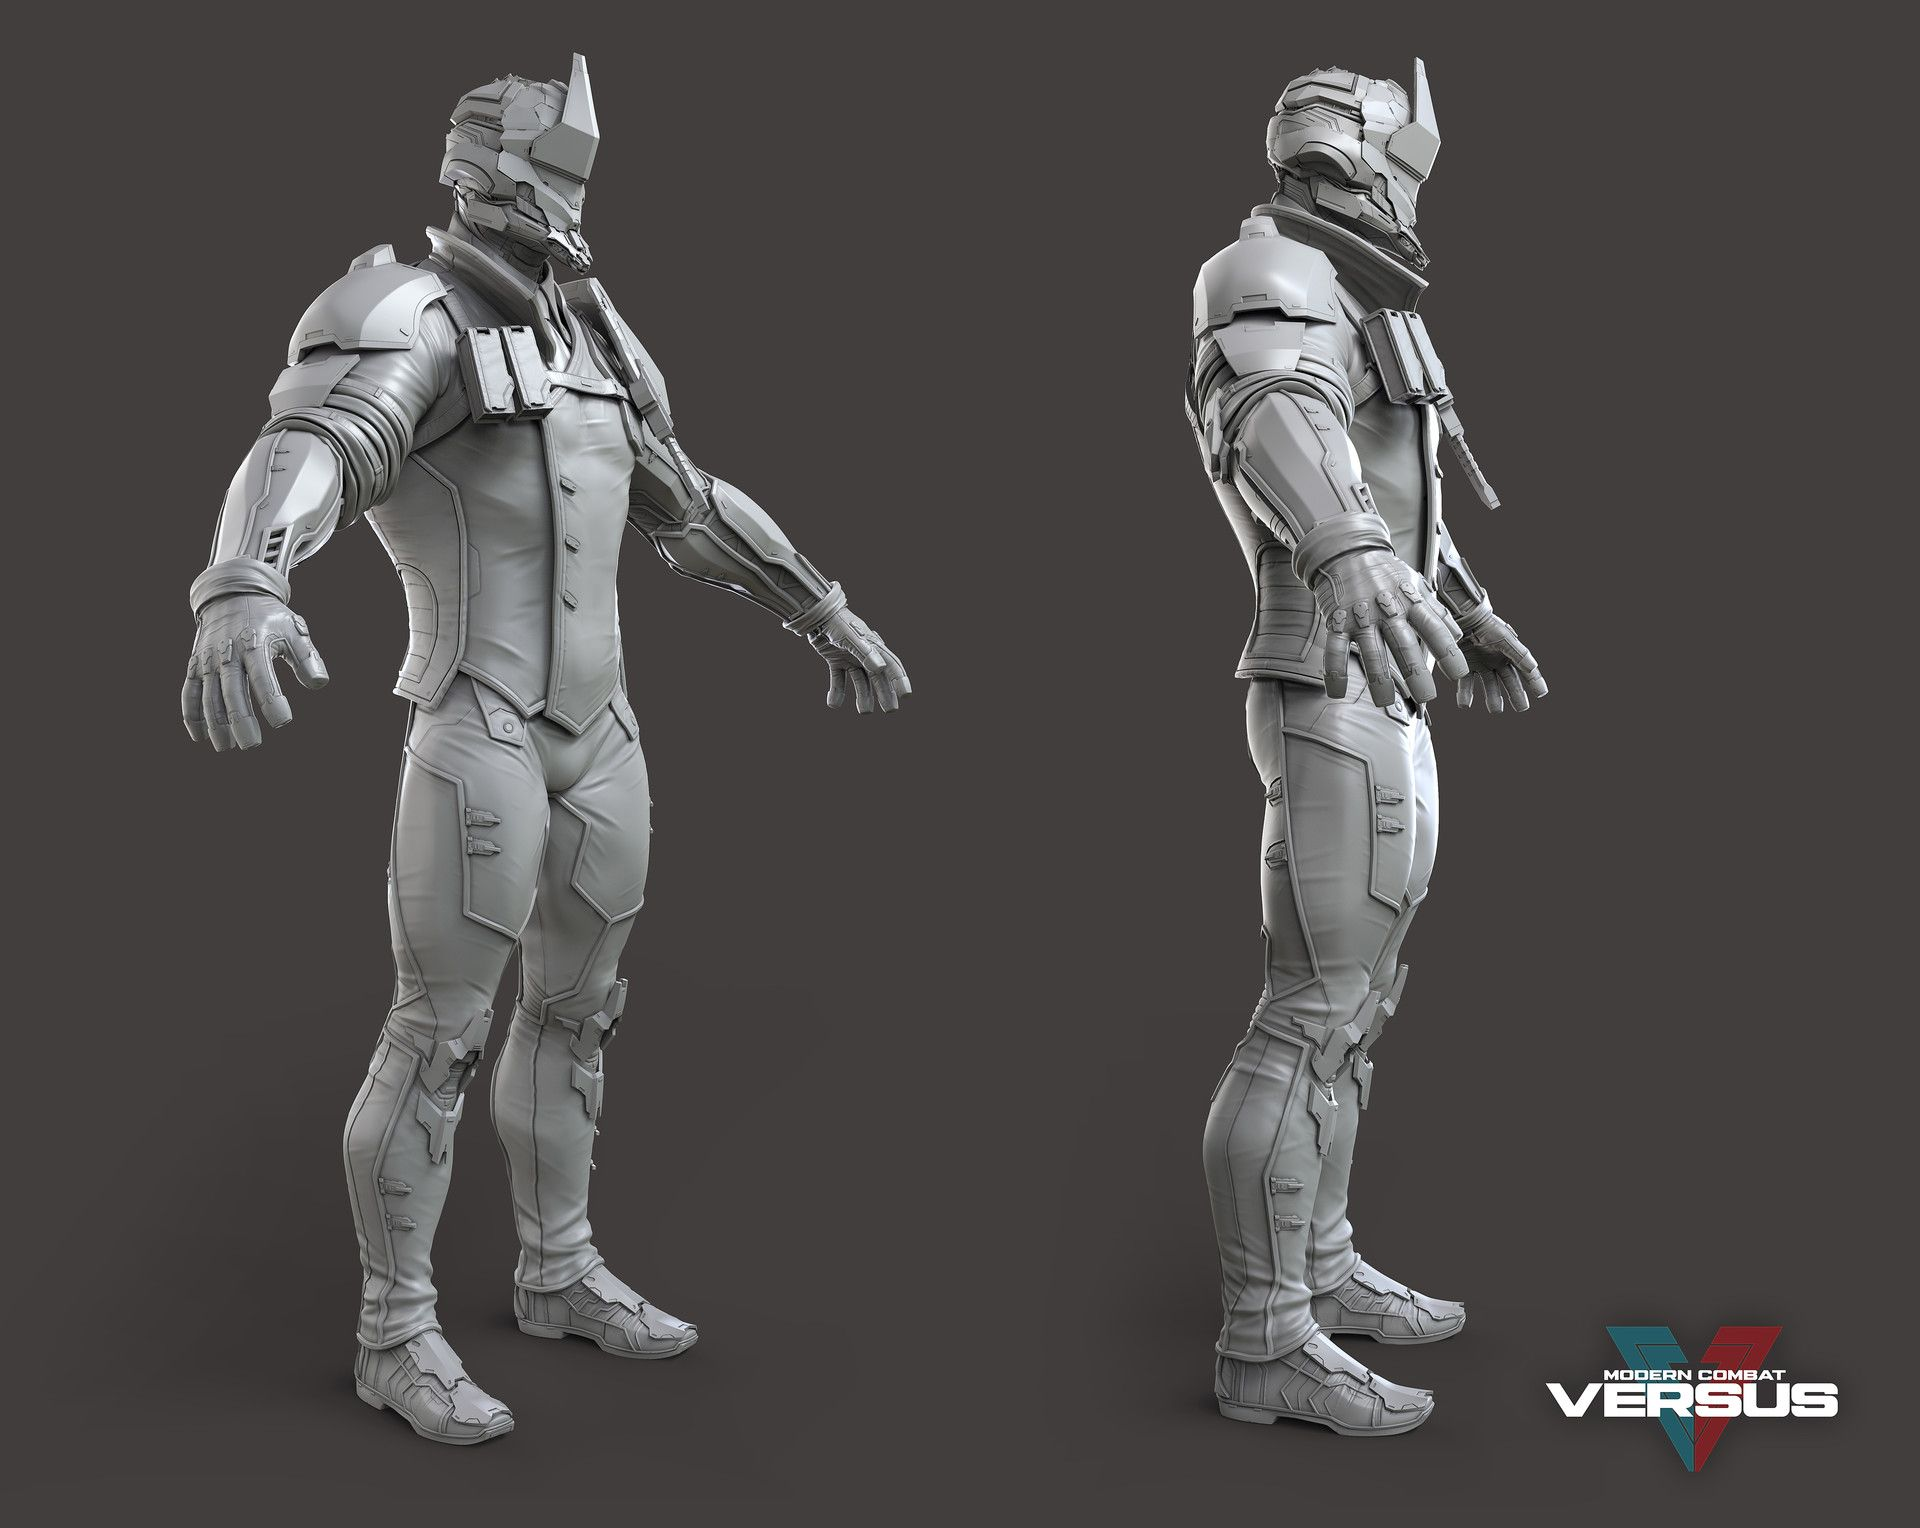 Images Of The High Res Scuplt I Made For Monark One Of The Characters I Made Modern Combat Versus Concept By Fred Rambaud